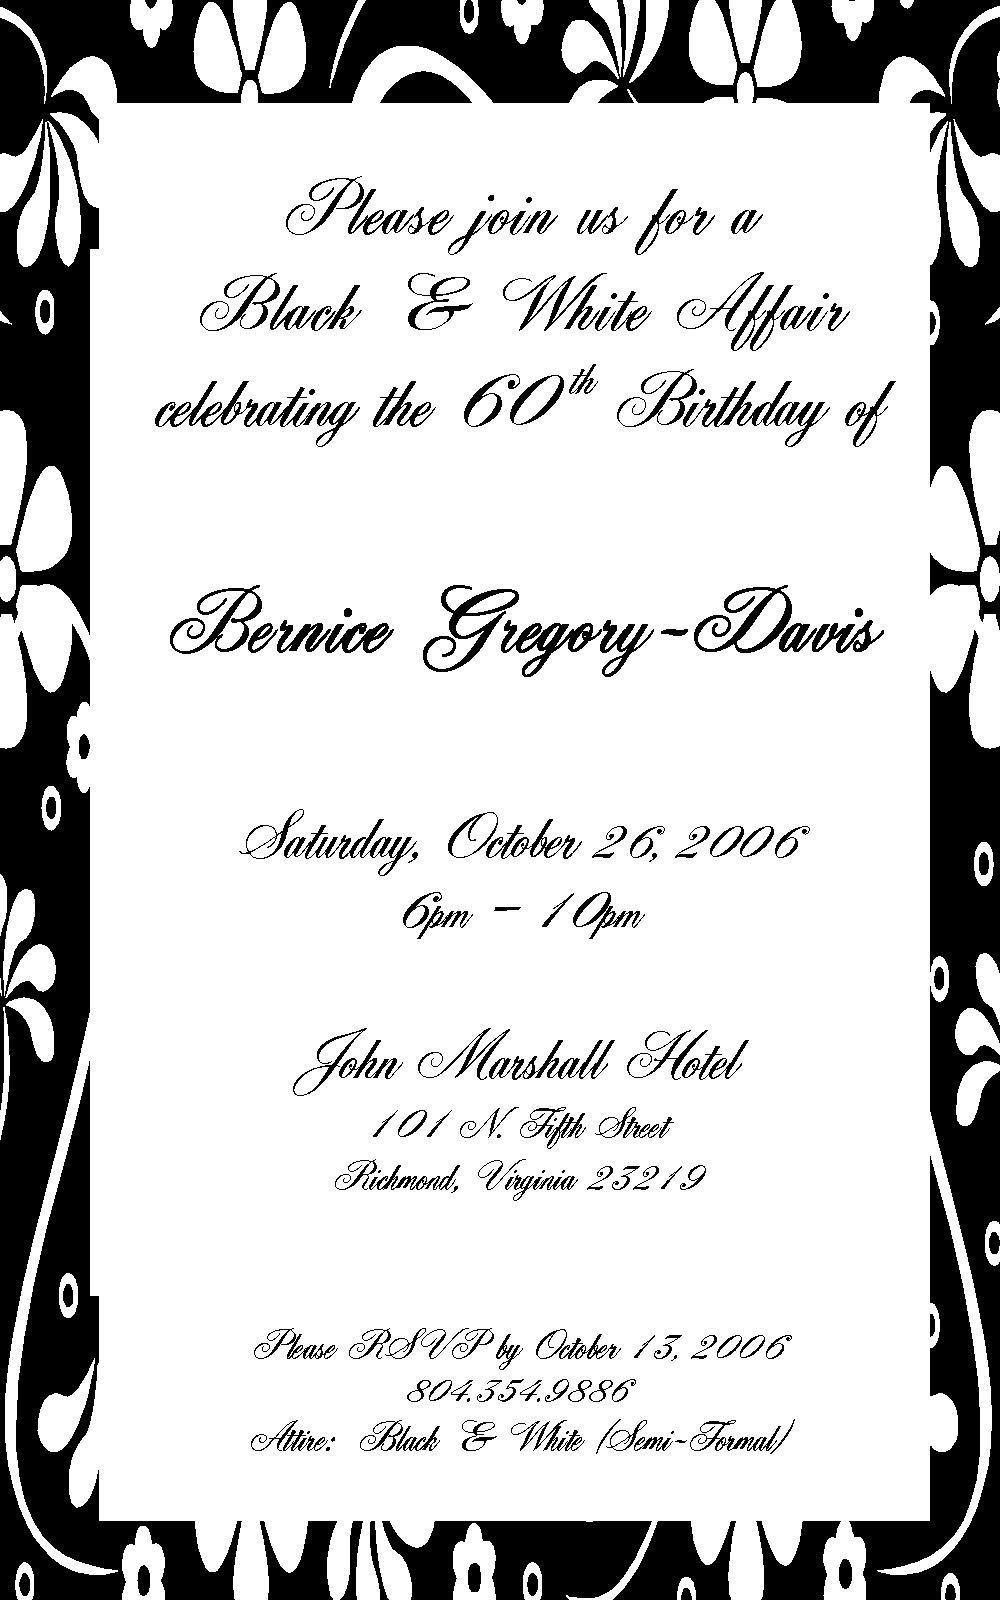 Birthday Invitation sample | Party Invitation | Pinterest | Dinner ...